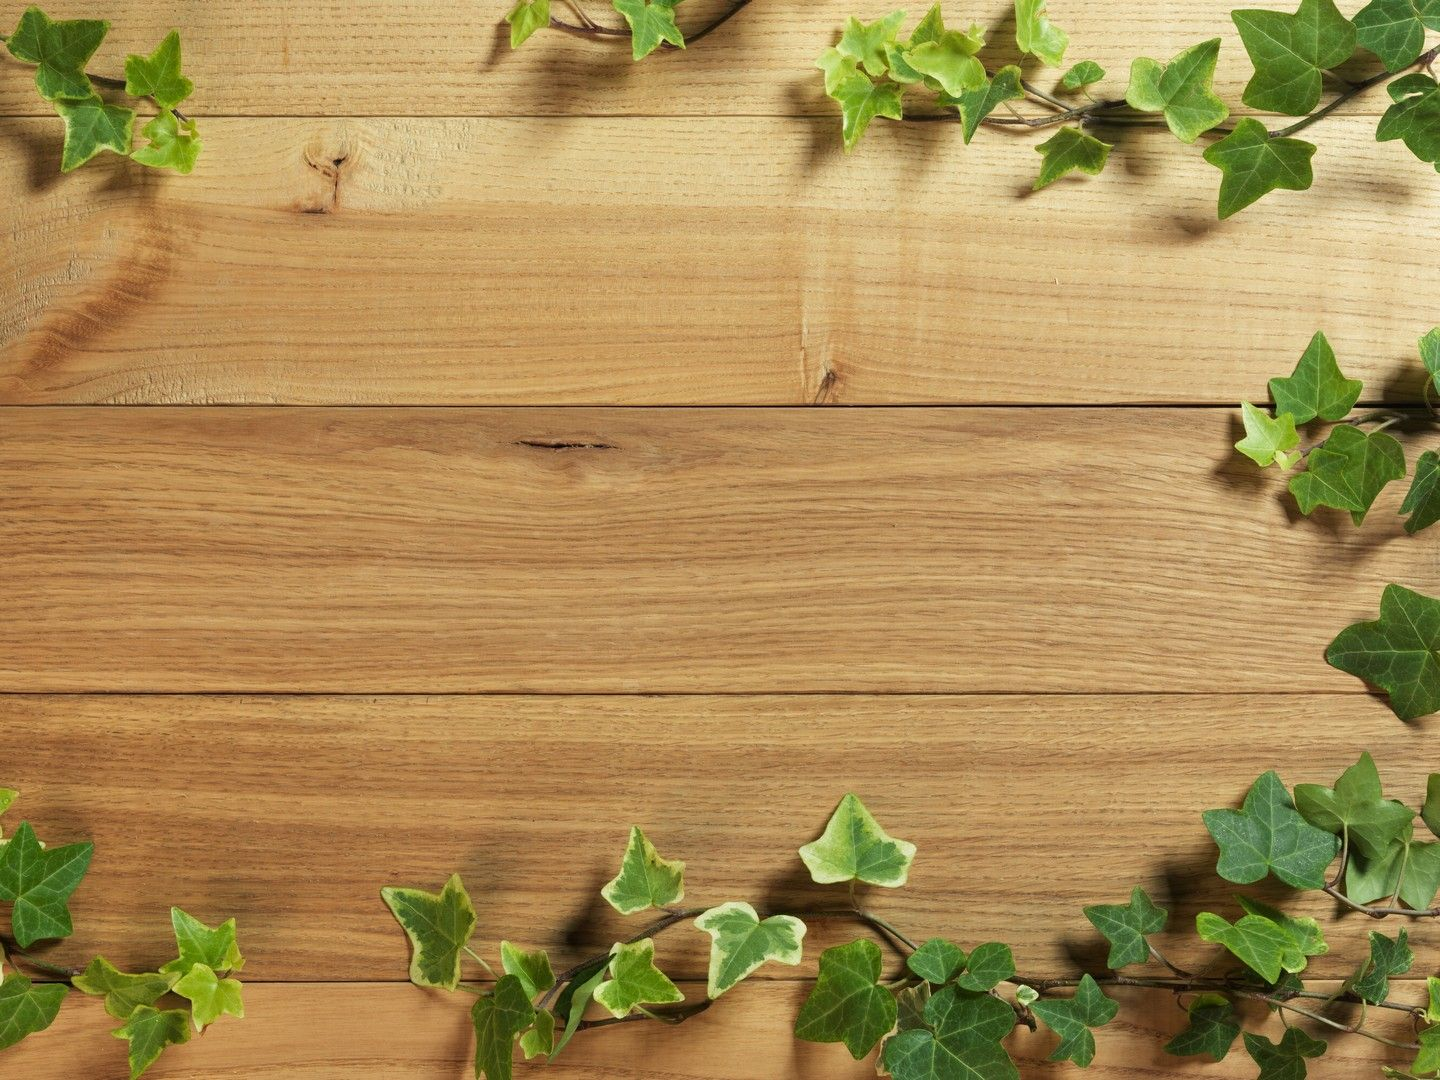 Wood table background hd - Ivy Wallpaper Wood Backgroundhd